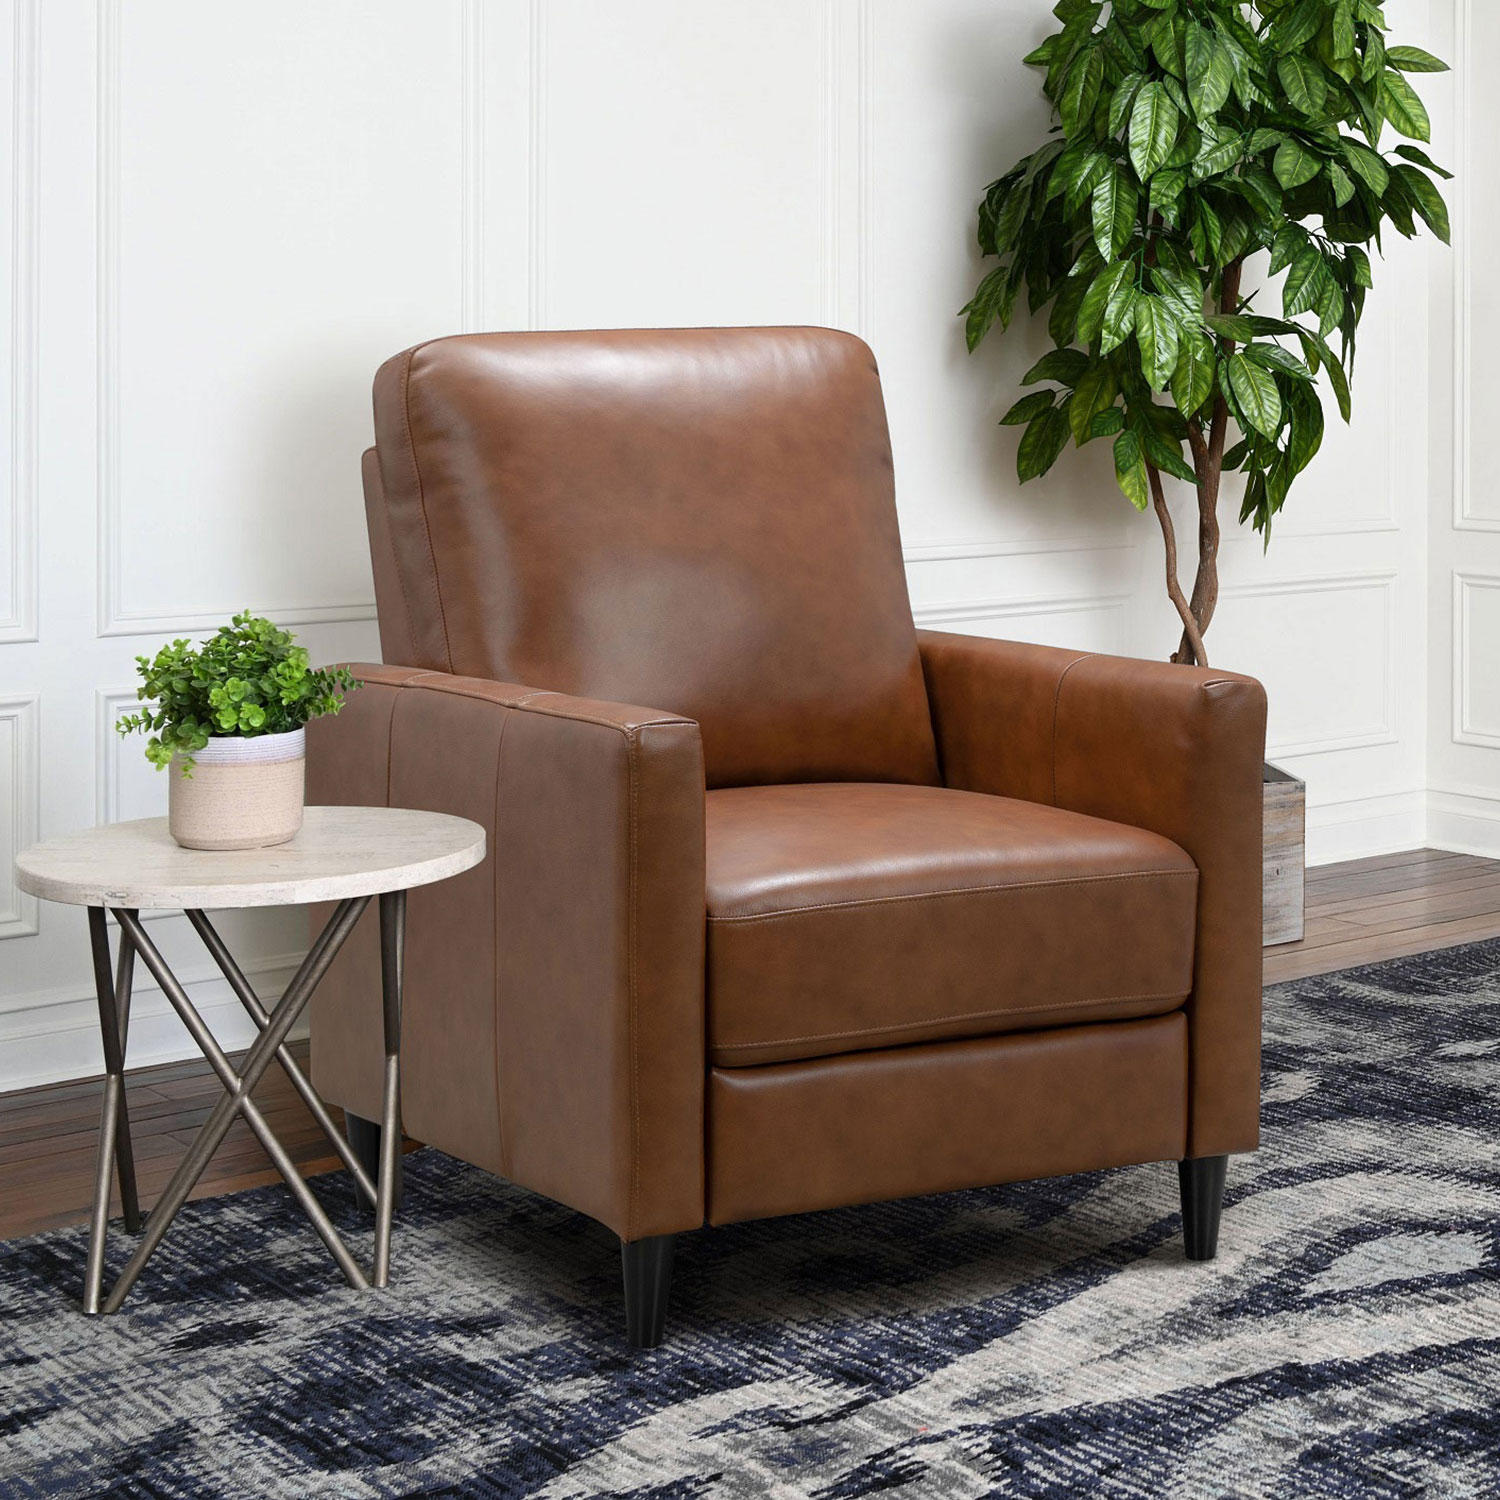 Abbyson Living Crestview Top-Grain Leather Pushback Recliner